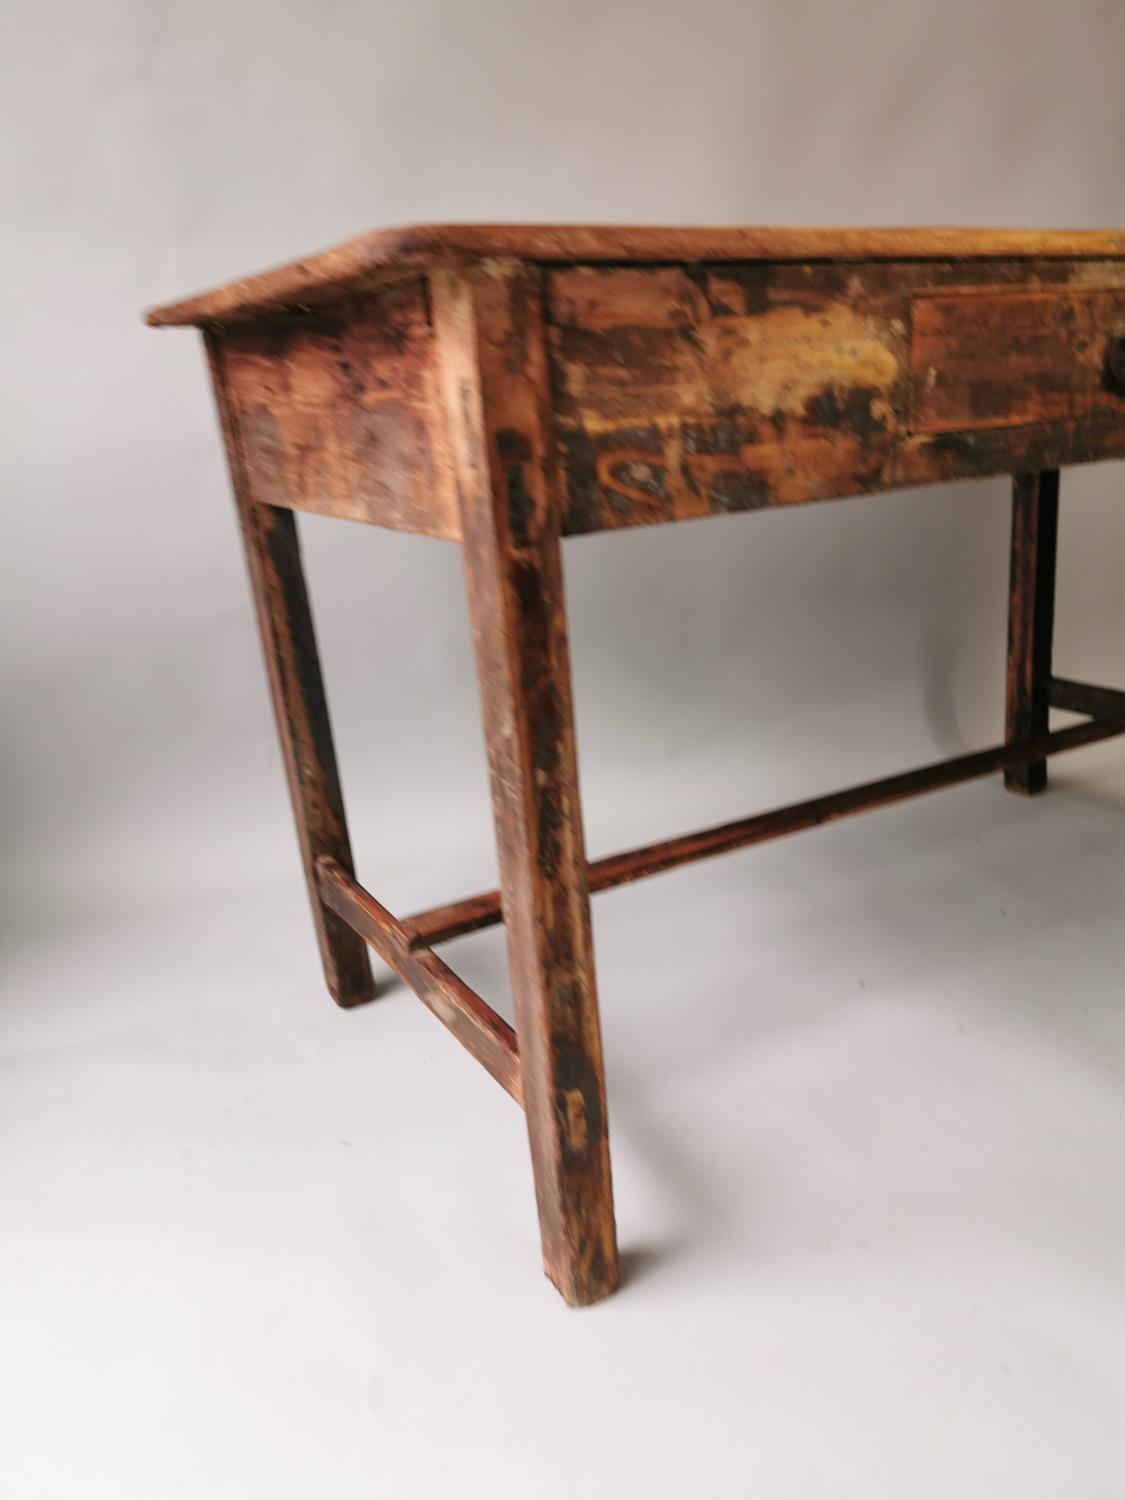 19th. C. painted pine table - Image 3 of 7